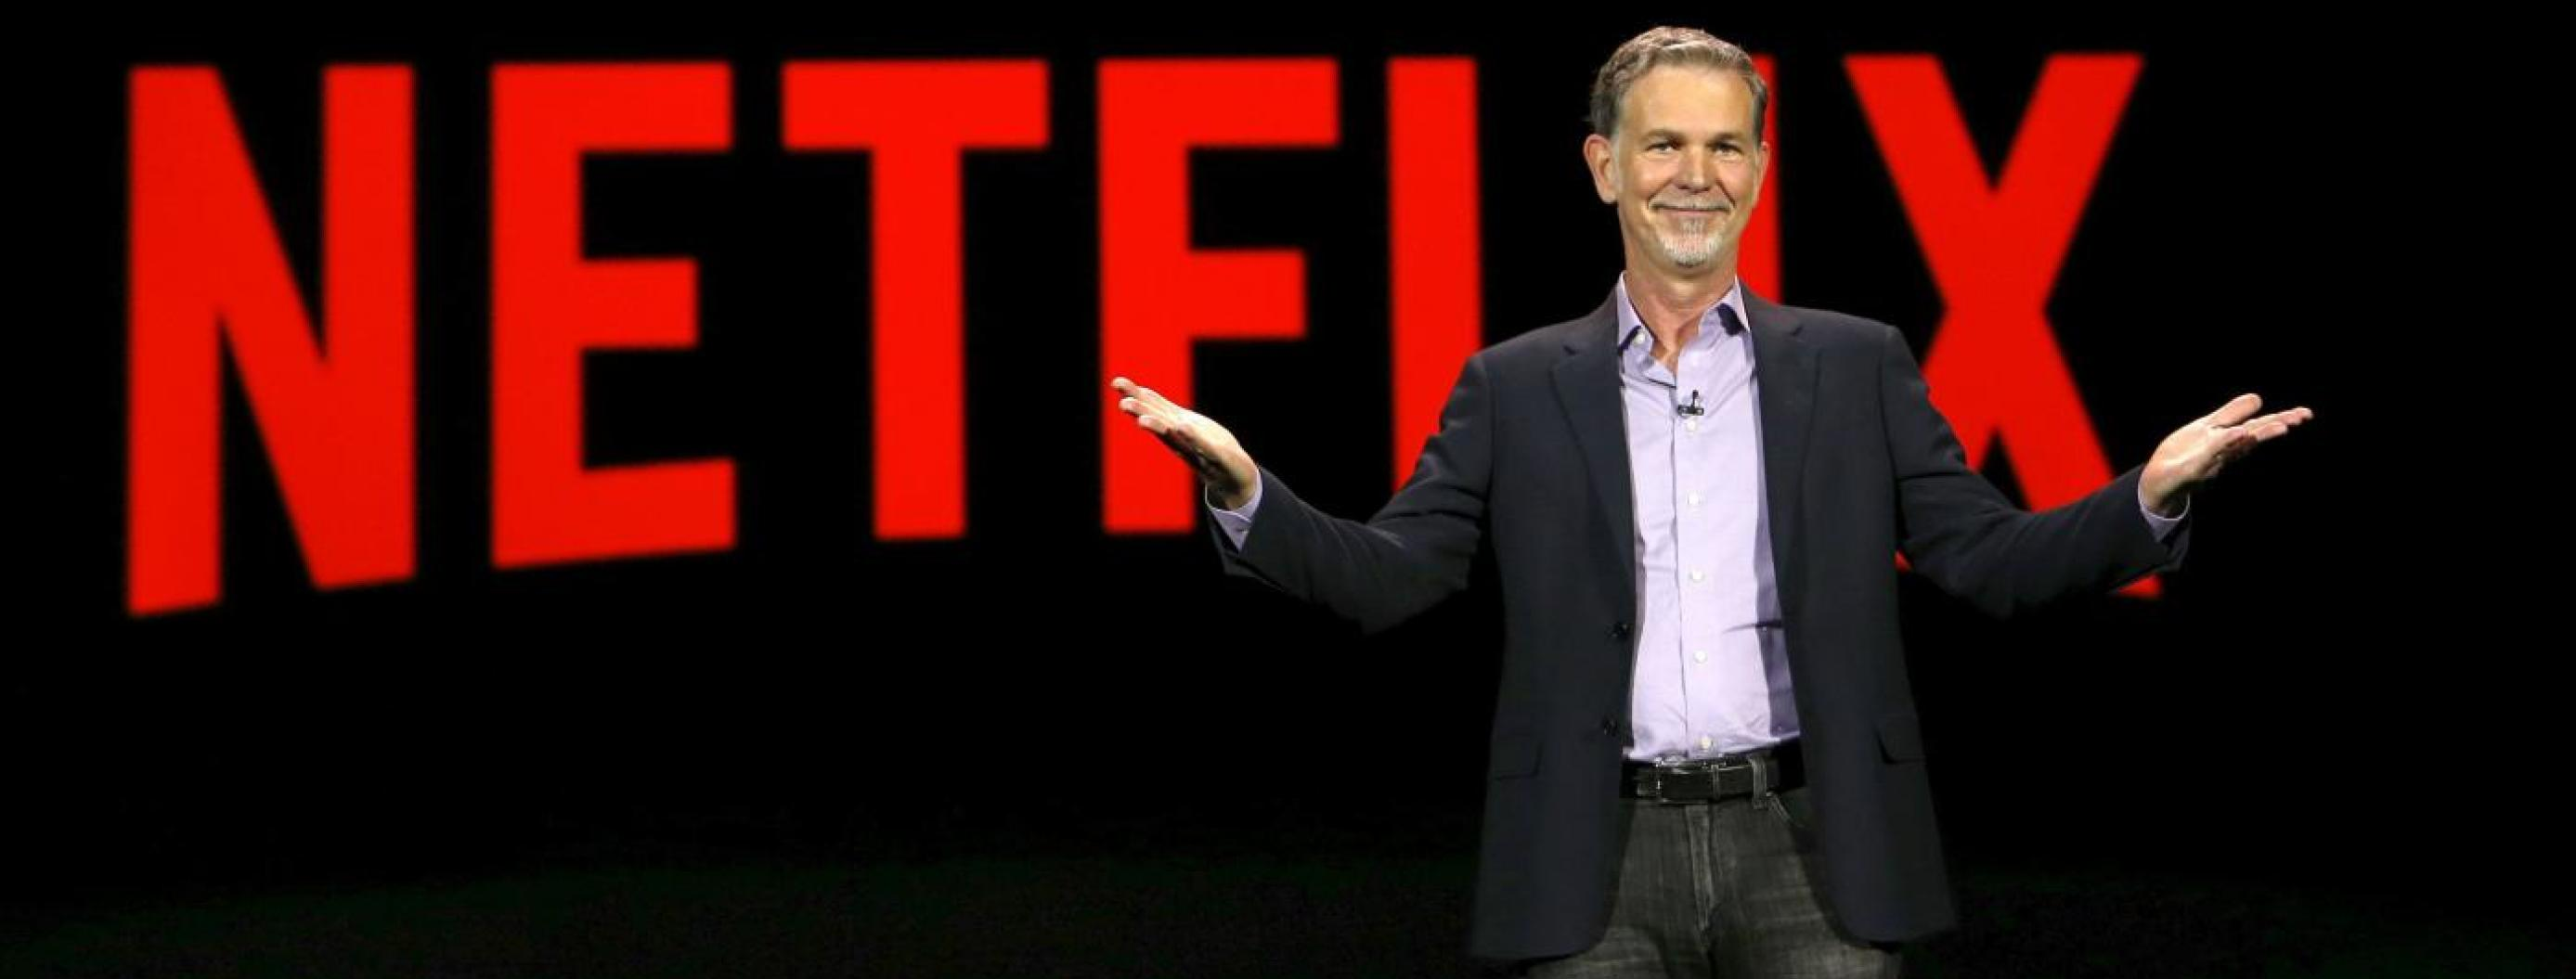 Netflix Will Finally Disclose How Many People Watch Their Original Content